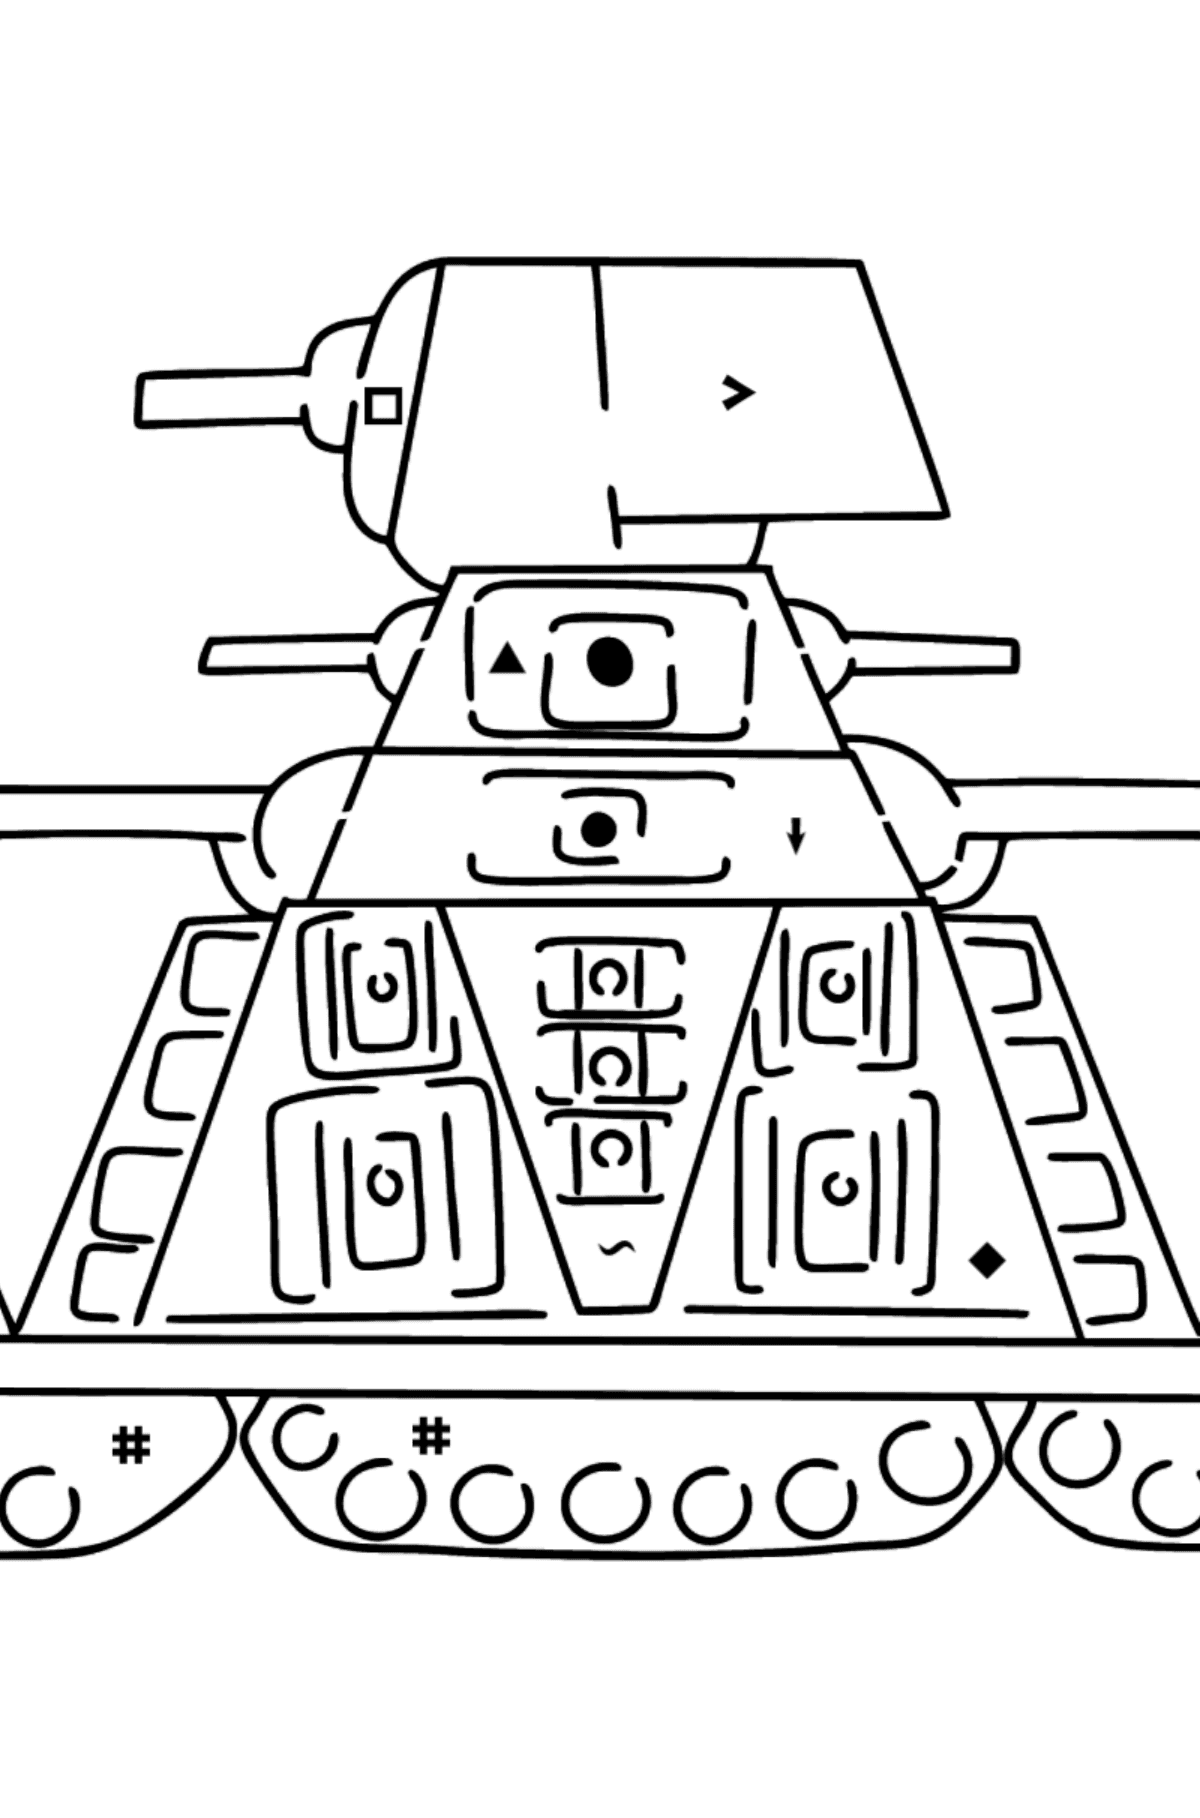 Tank KV 44 coloring page - Coloring by Symbols for Kids